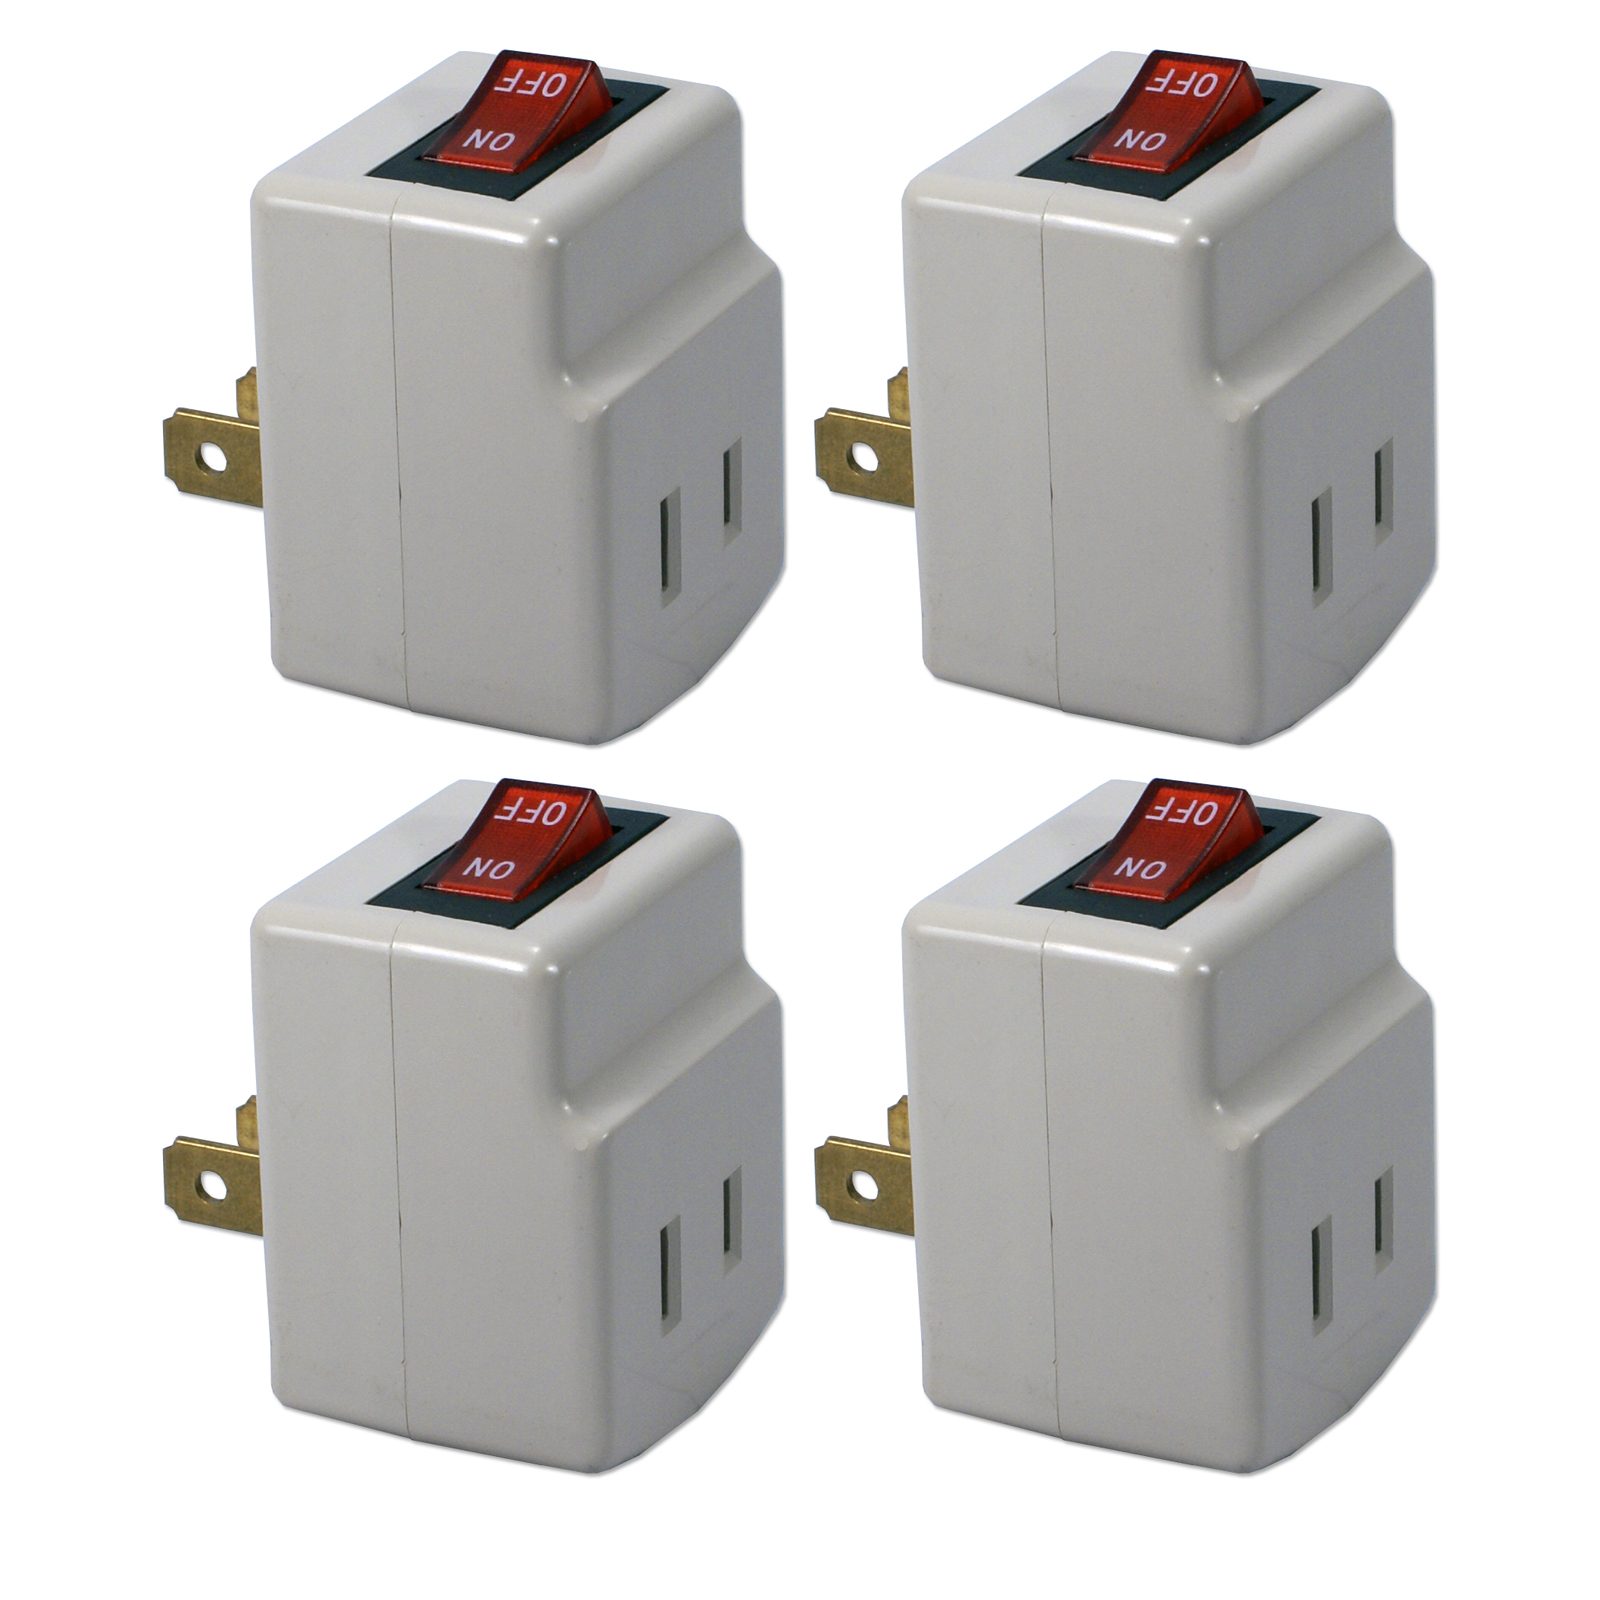 QVS Single-Port Power Adapter with On/Off Switch - 4-Pack